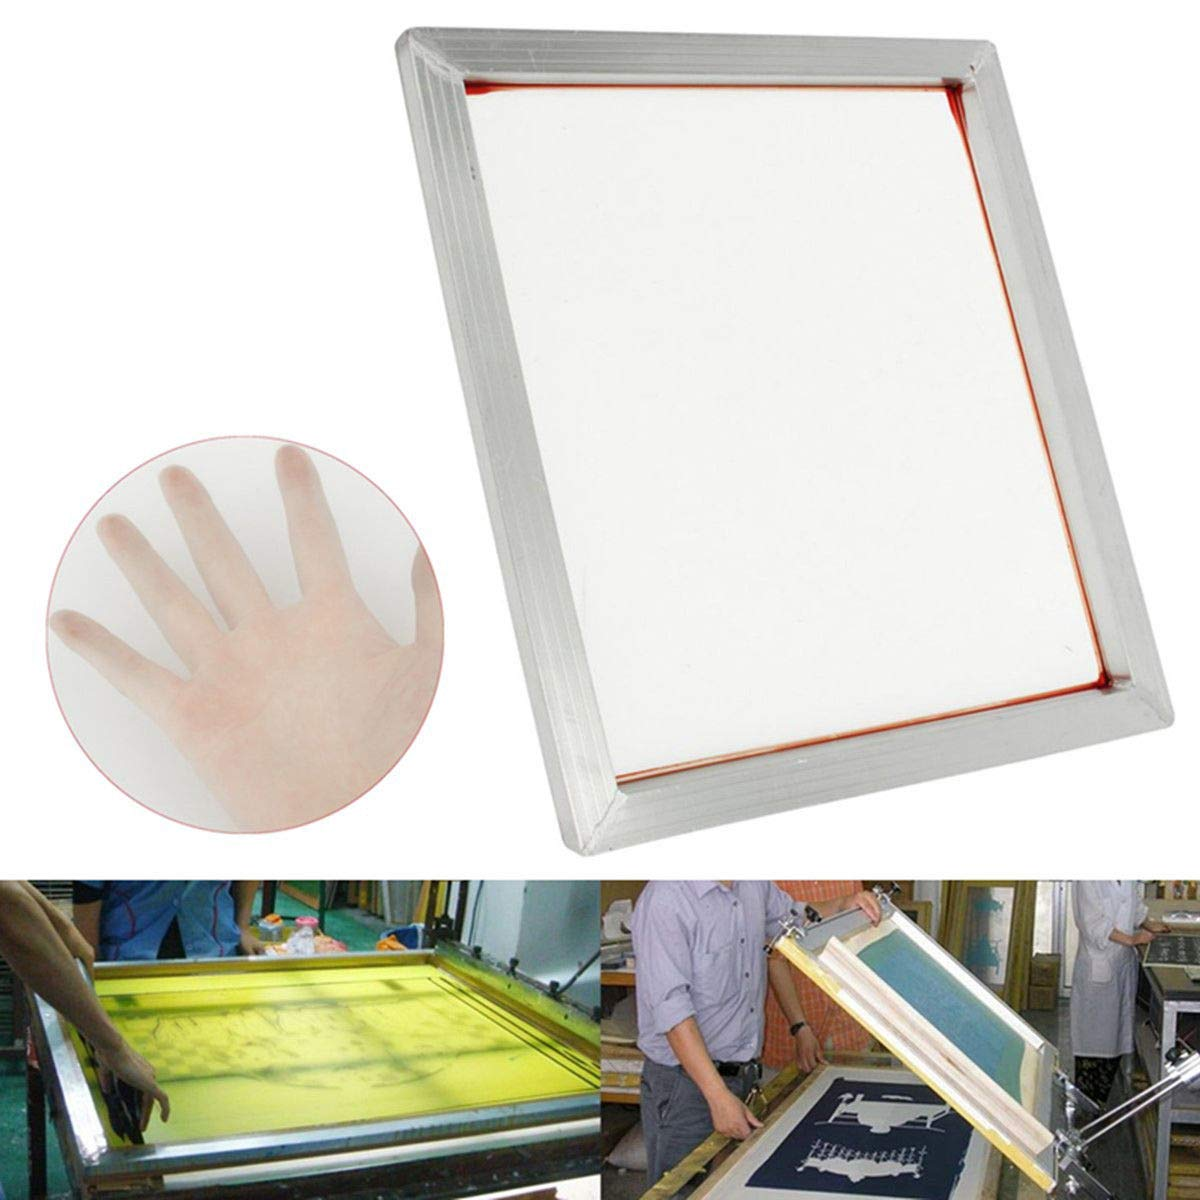 230 INTBUYING 6Pcs 15x17 Screen Printing Frame Mesh Pre-Stretched Aluminum Frame Yellow Mesh 100T